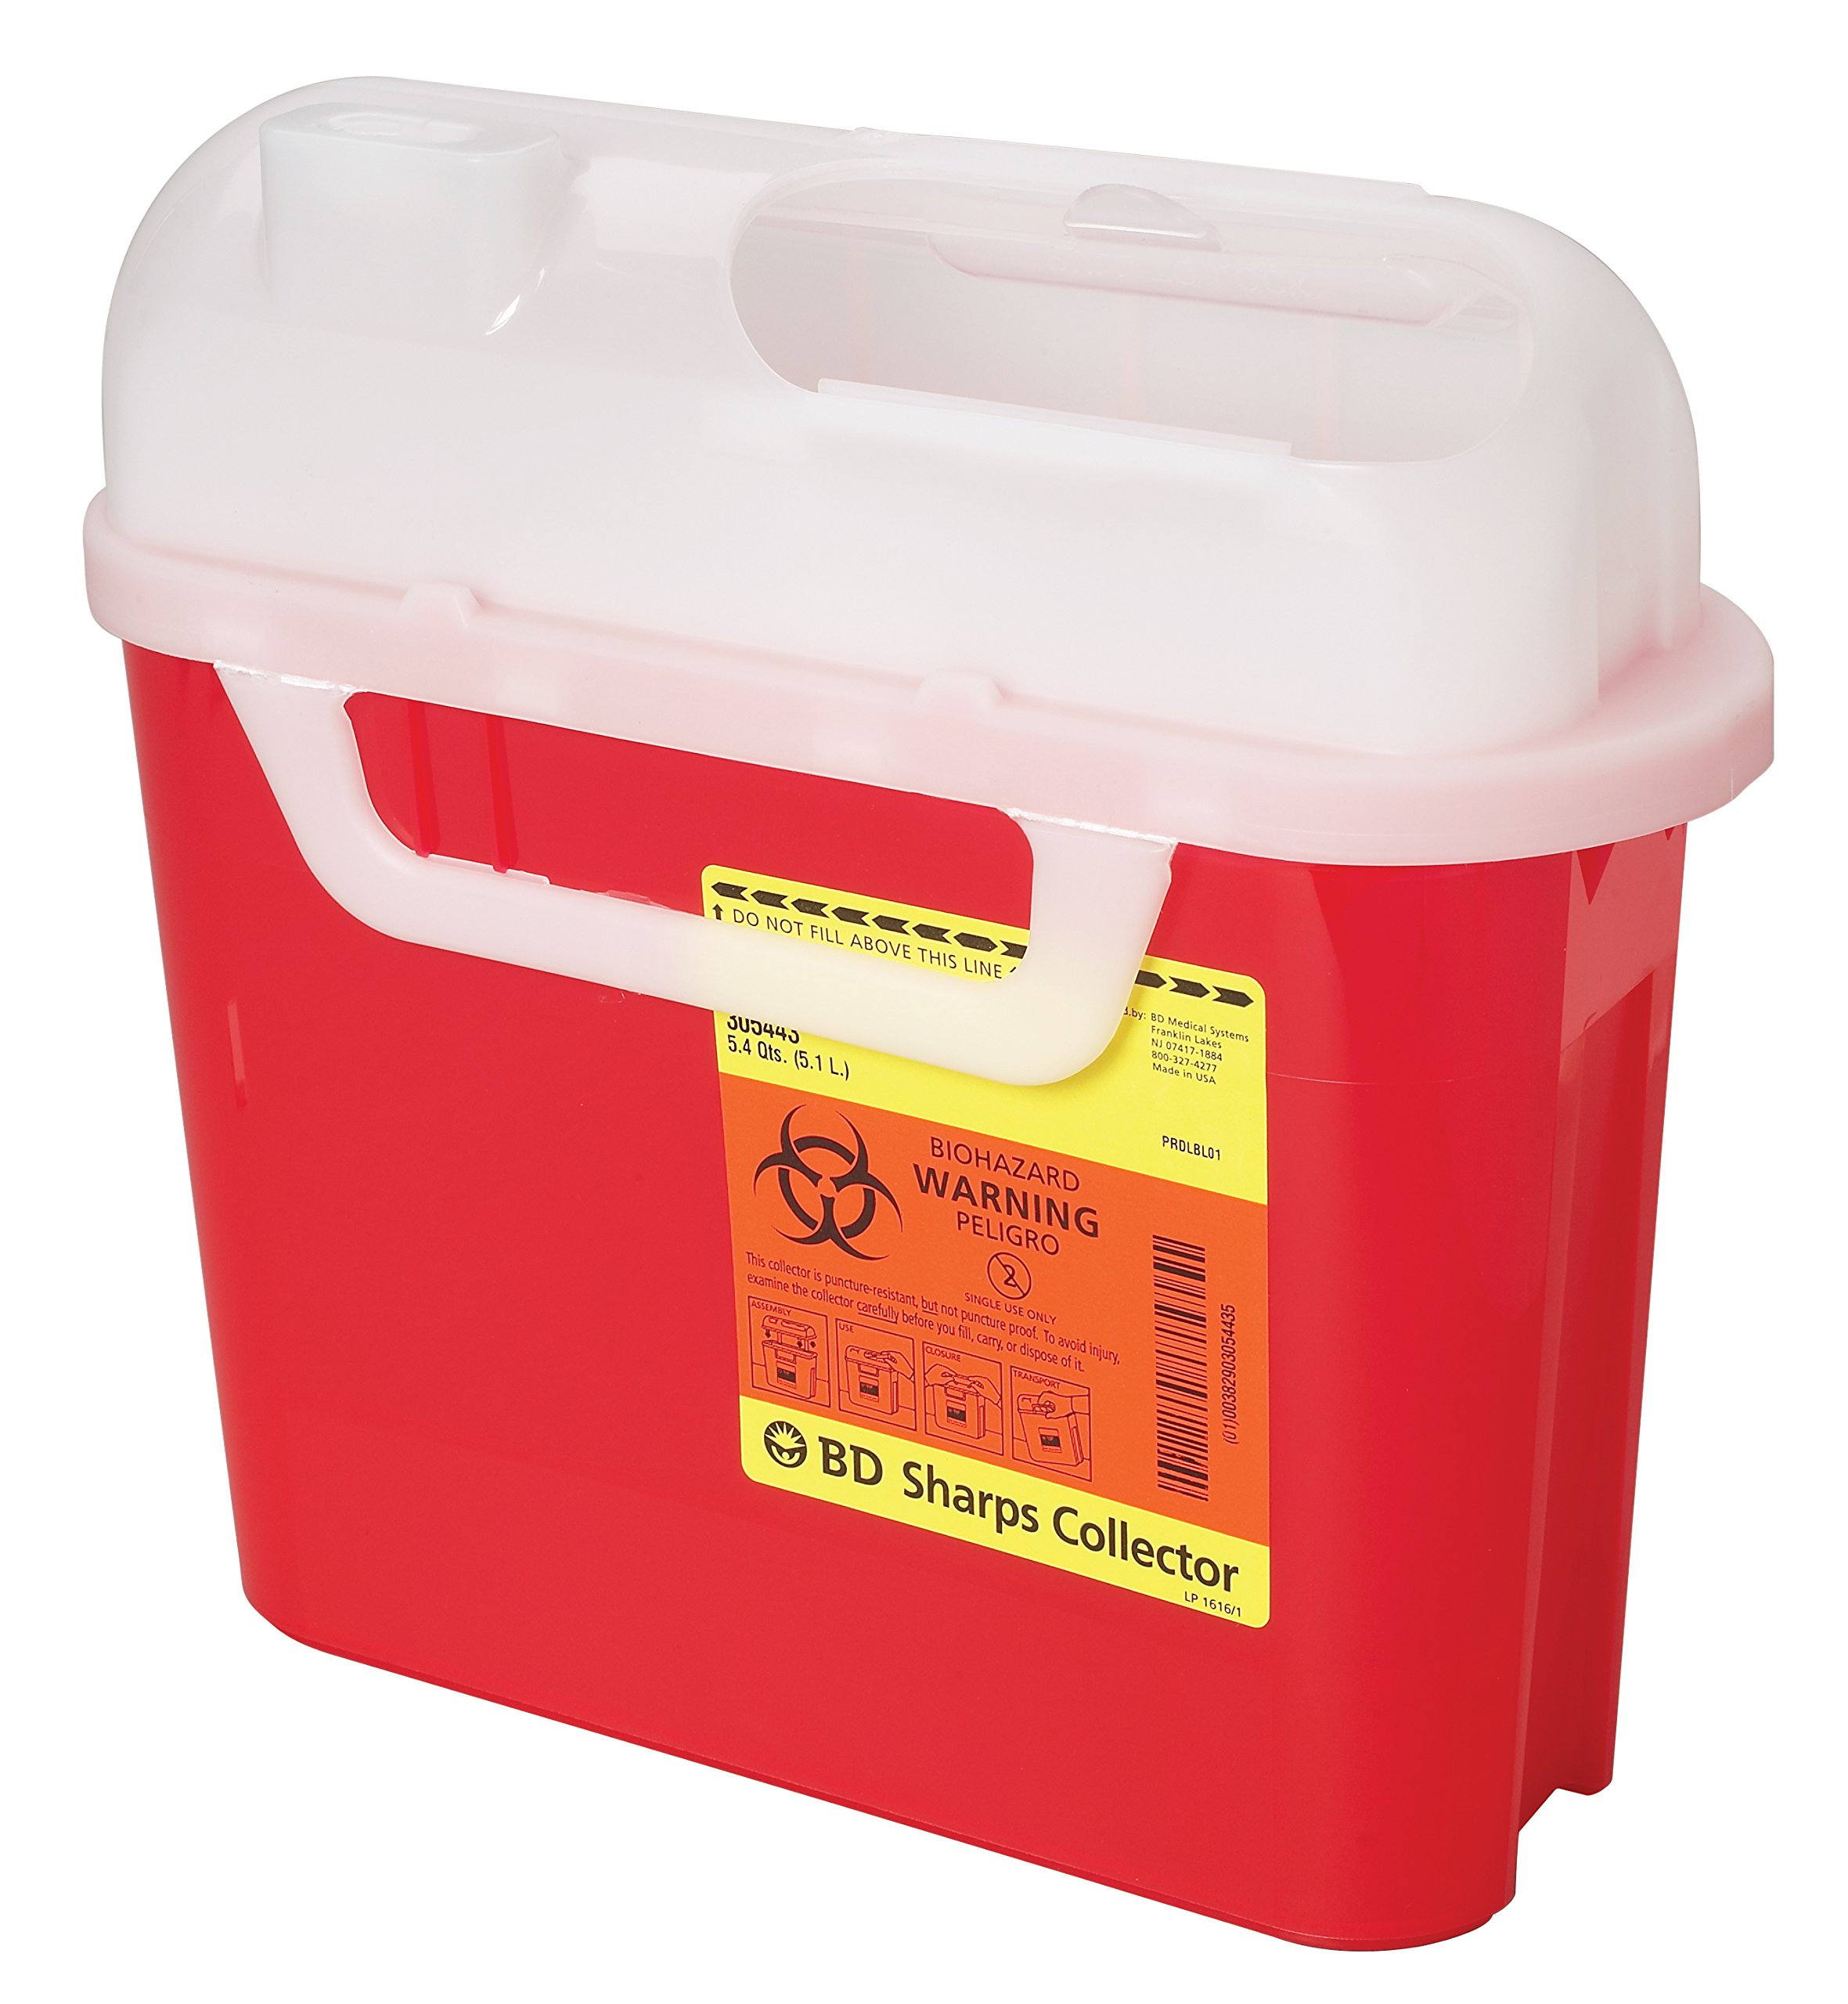 BD Medical Systems 305443 Sharps Collector, Side Entry, 5.4 Quart Capacity, 10.75'' Height x 12'' Width x 4.5'' Depth, Red (Pack of 20) by BD Medical Systems